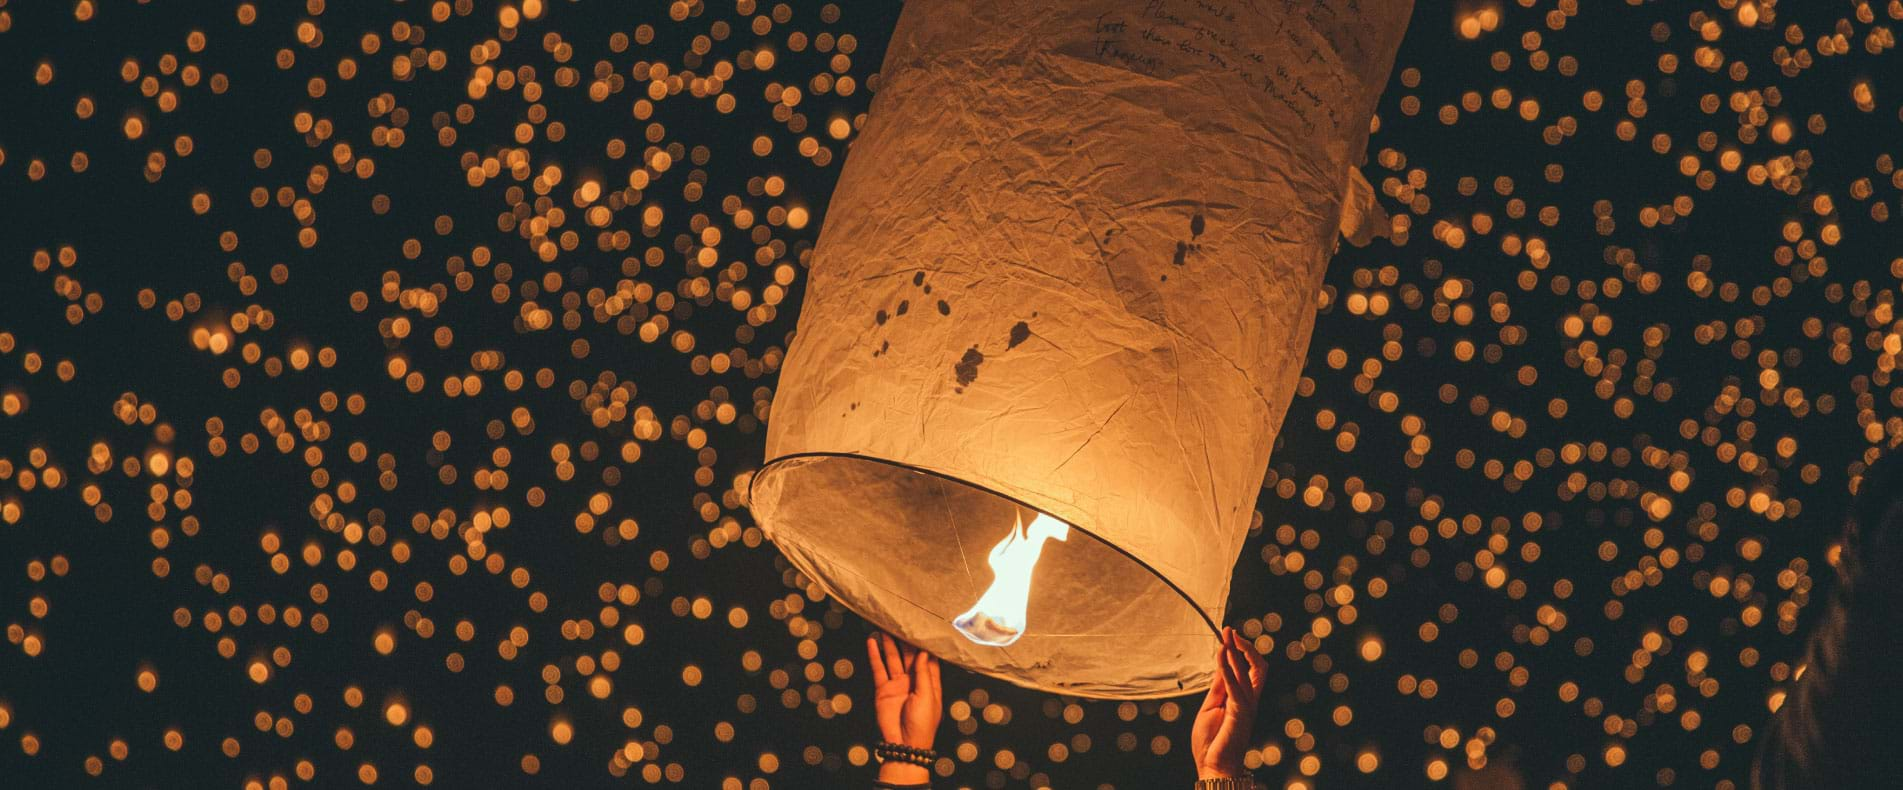 Paper lanterns in Chiang Mai, Thailand